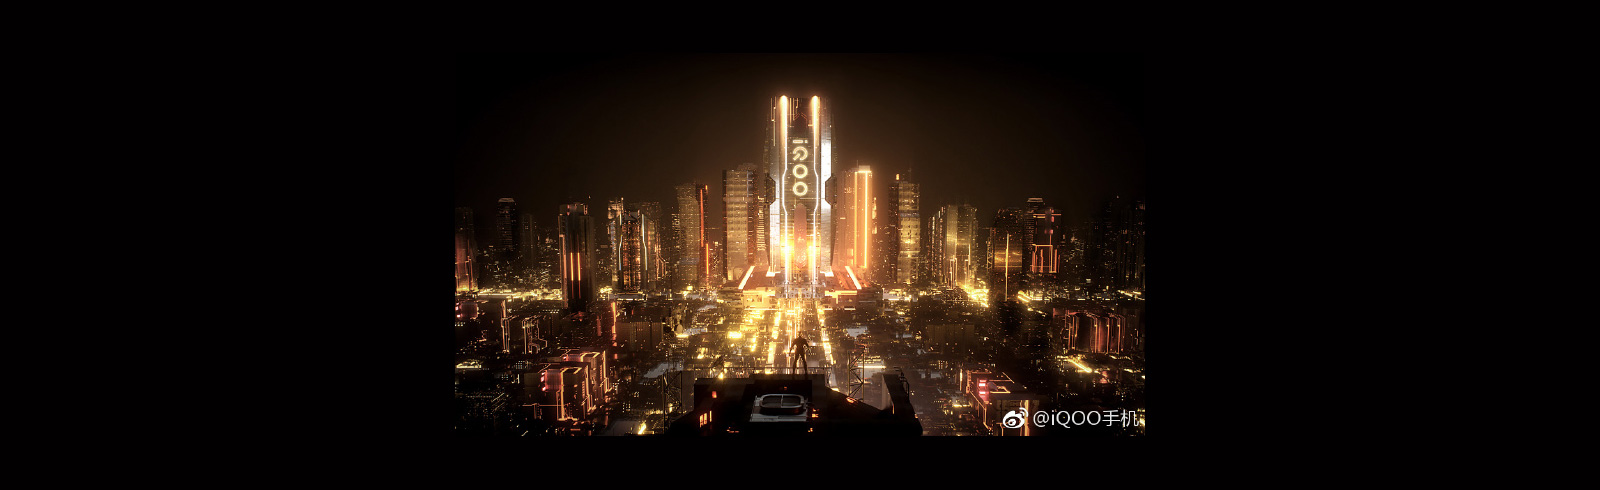 Vivo teases its iQOO sub-brand, to be announced on February 13 with the first iQOO smartphone